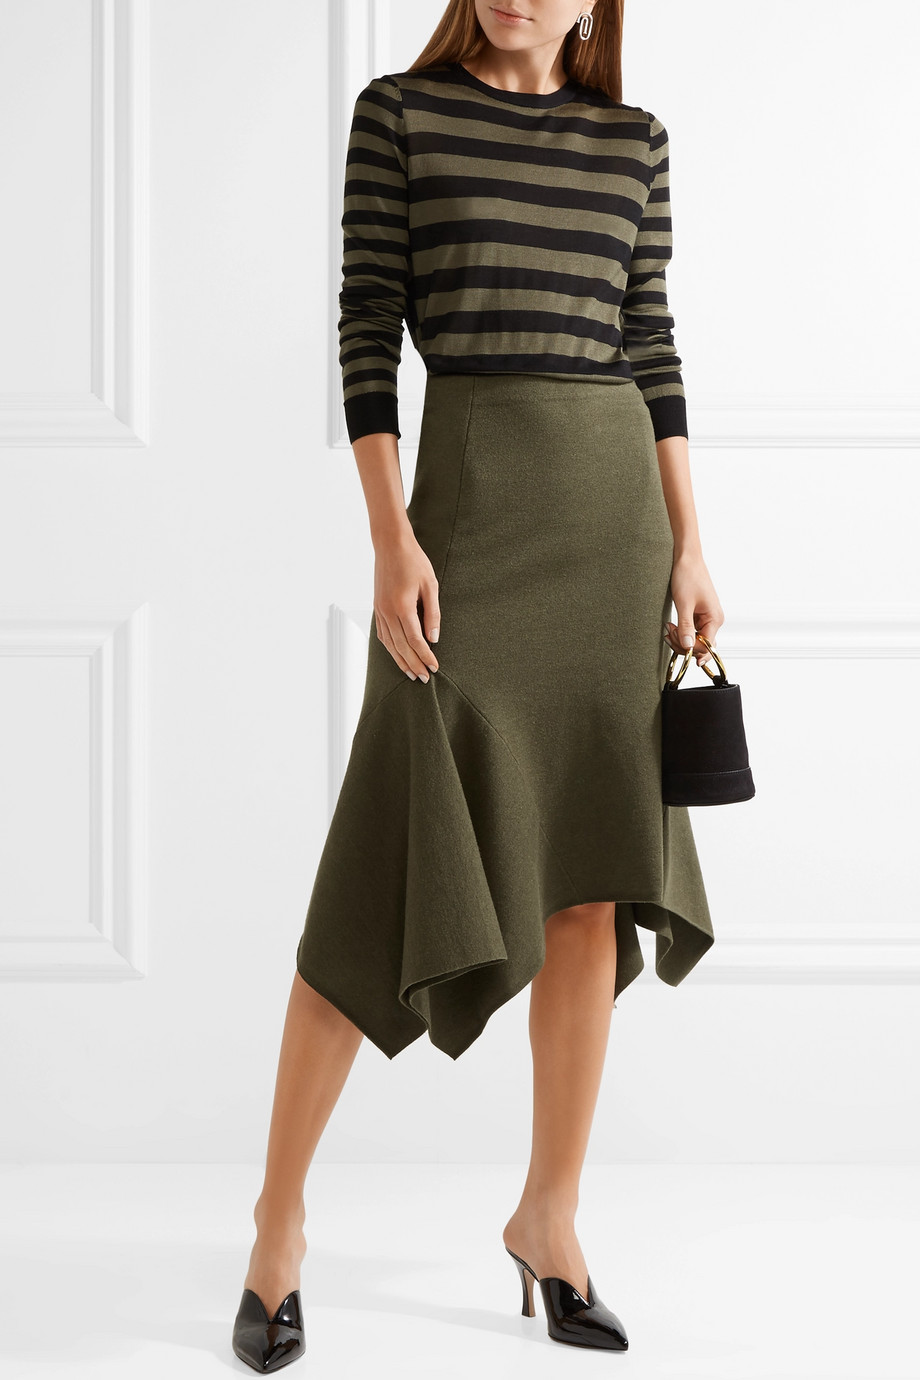 Jason Wu Skirt